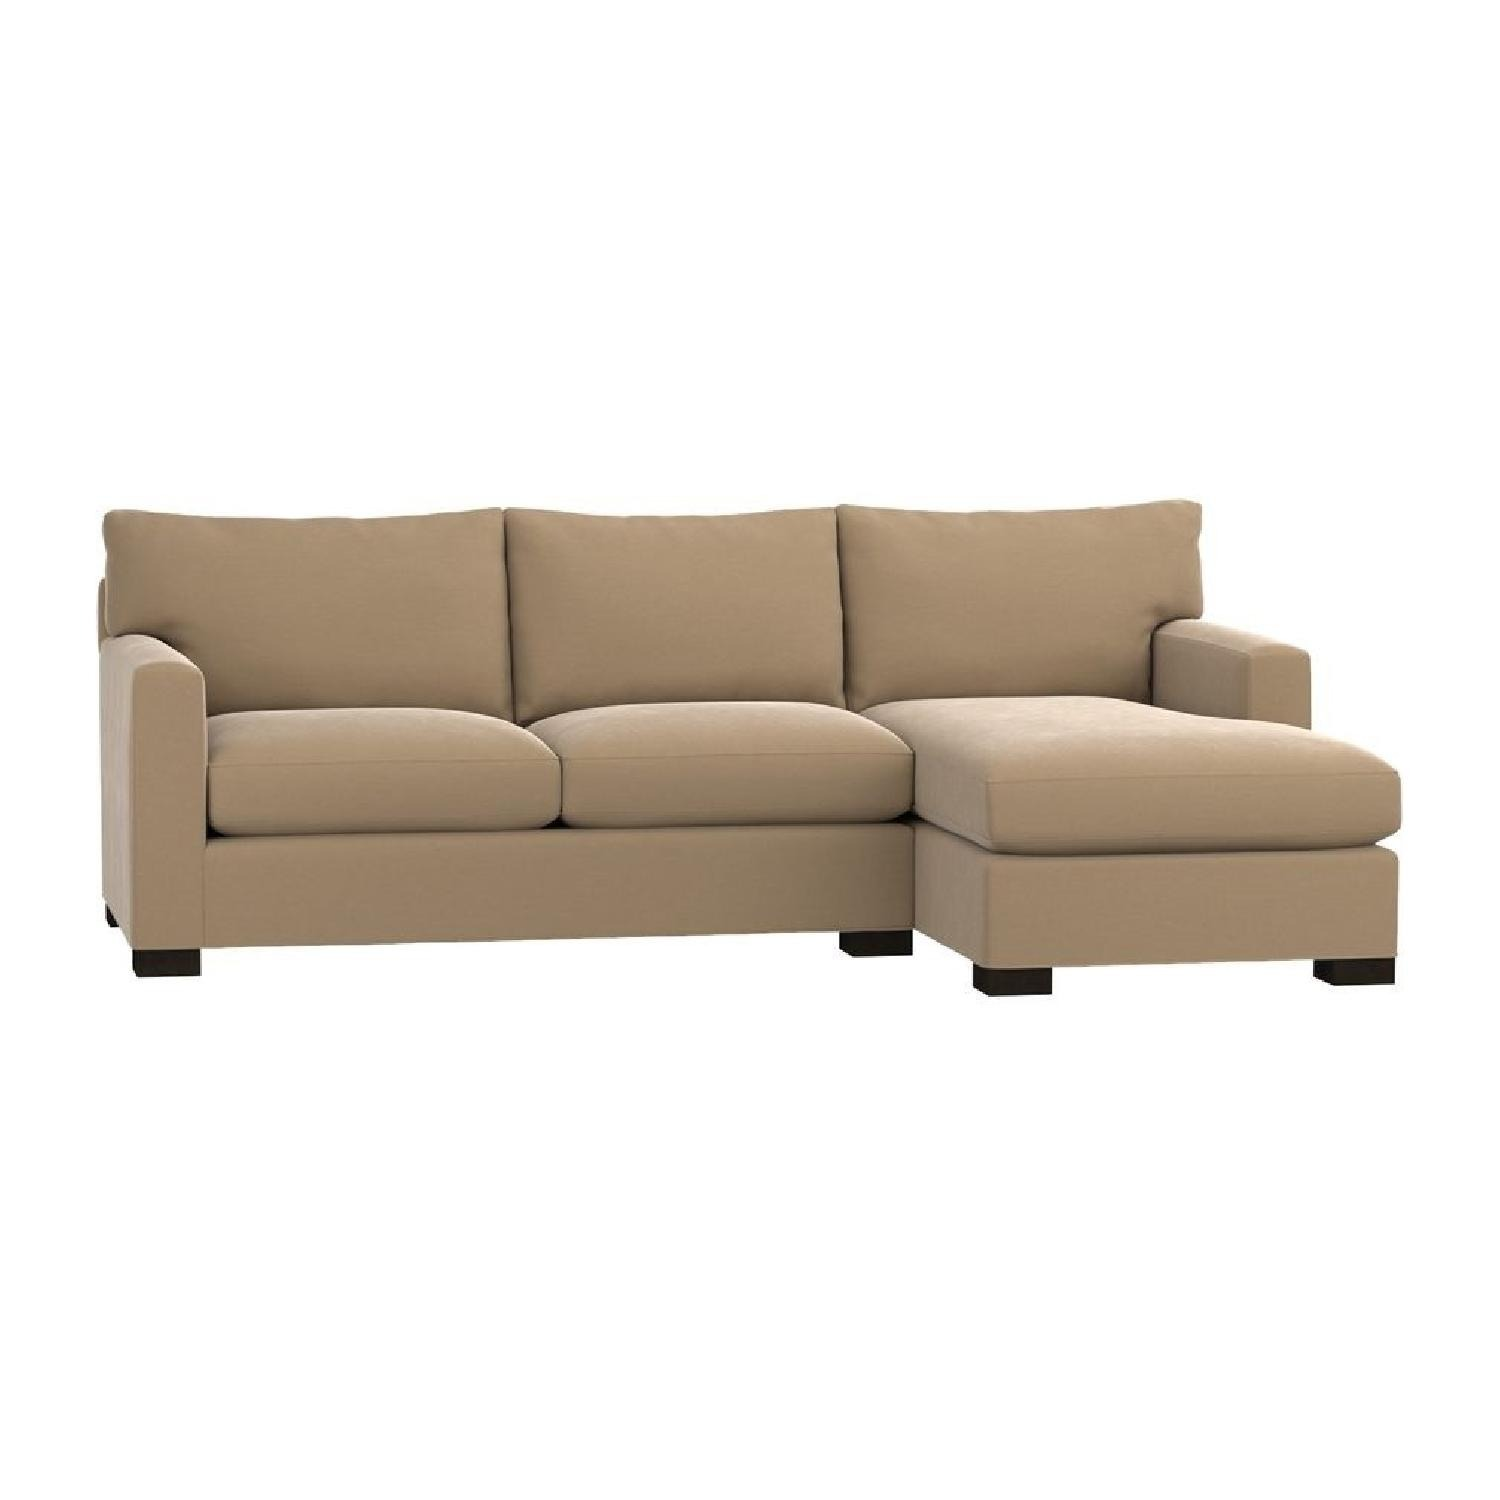 Crate & Barrel Axis II 2-Piece Sectional Sofa